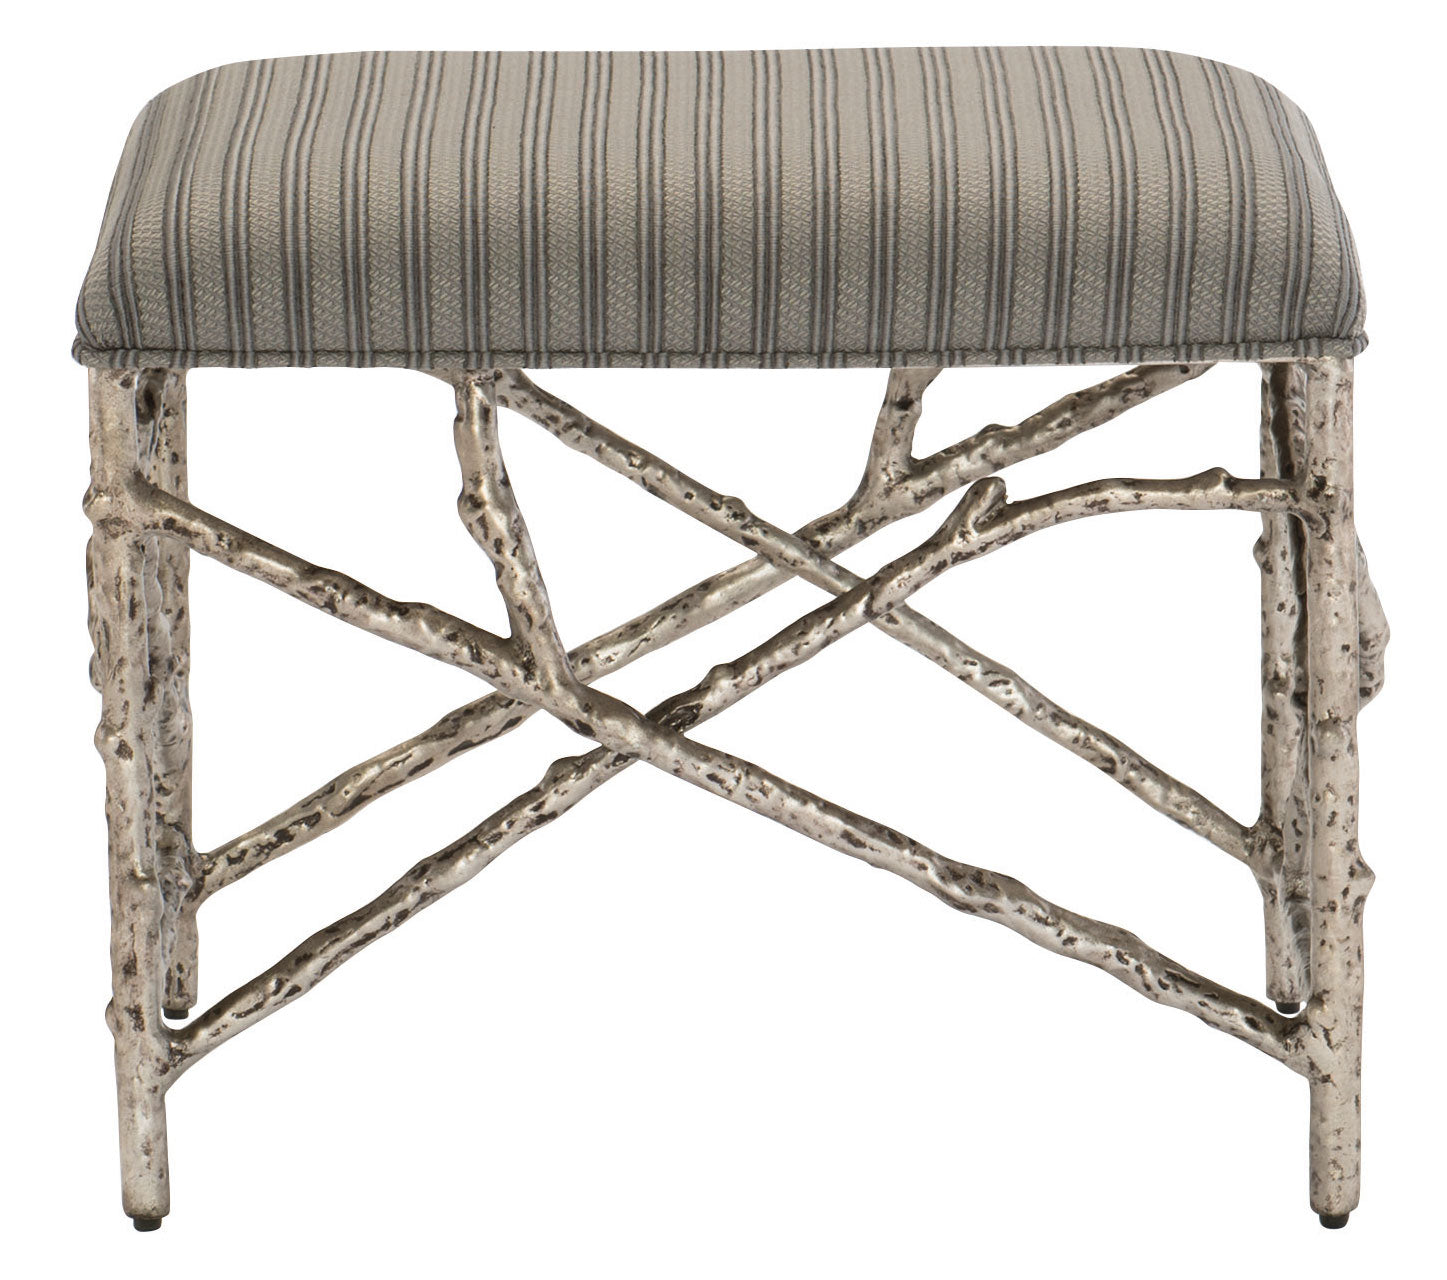 Stupendous Rhonda Silver Leaf Vanity Stool Andrewgaddart Wooden Chair Designs For Living Room Andrewgaddartcom